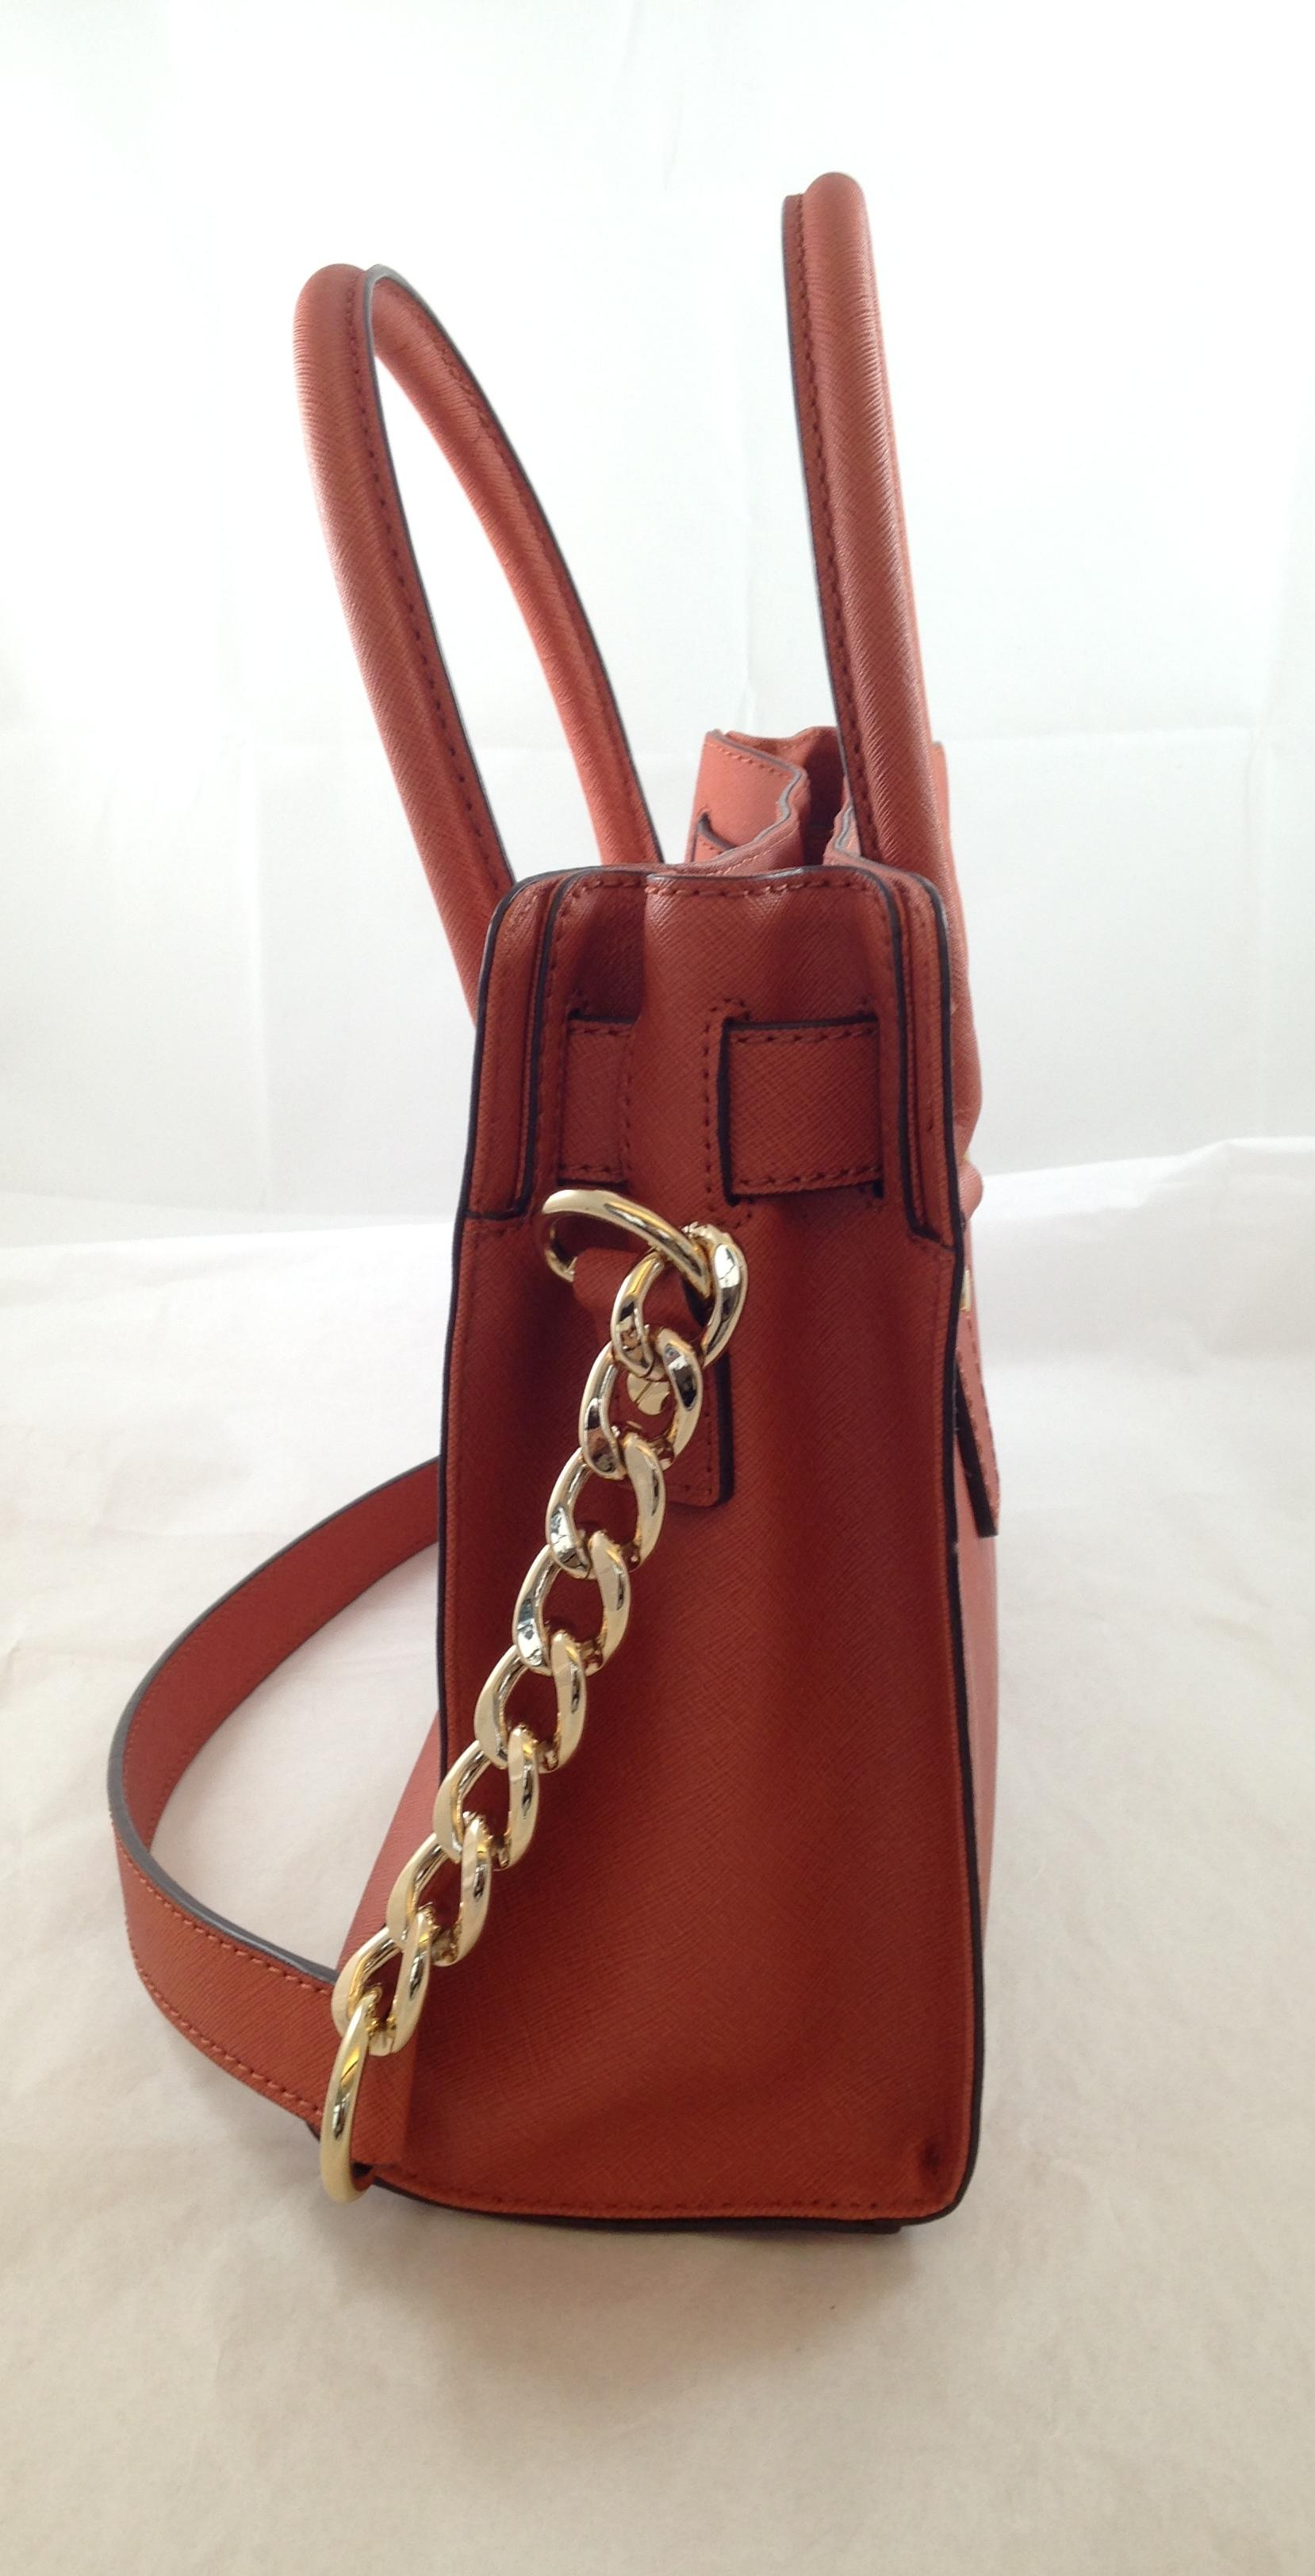 21c1de239533 ... sale michael kors hamilton east west honey redish rust leather satchel  tradesy 52b8c fd610